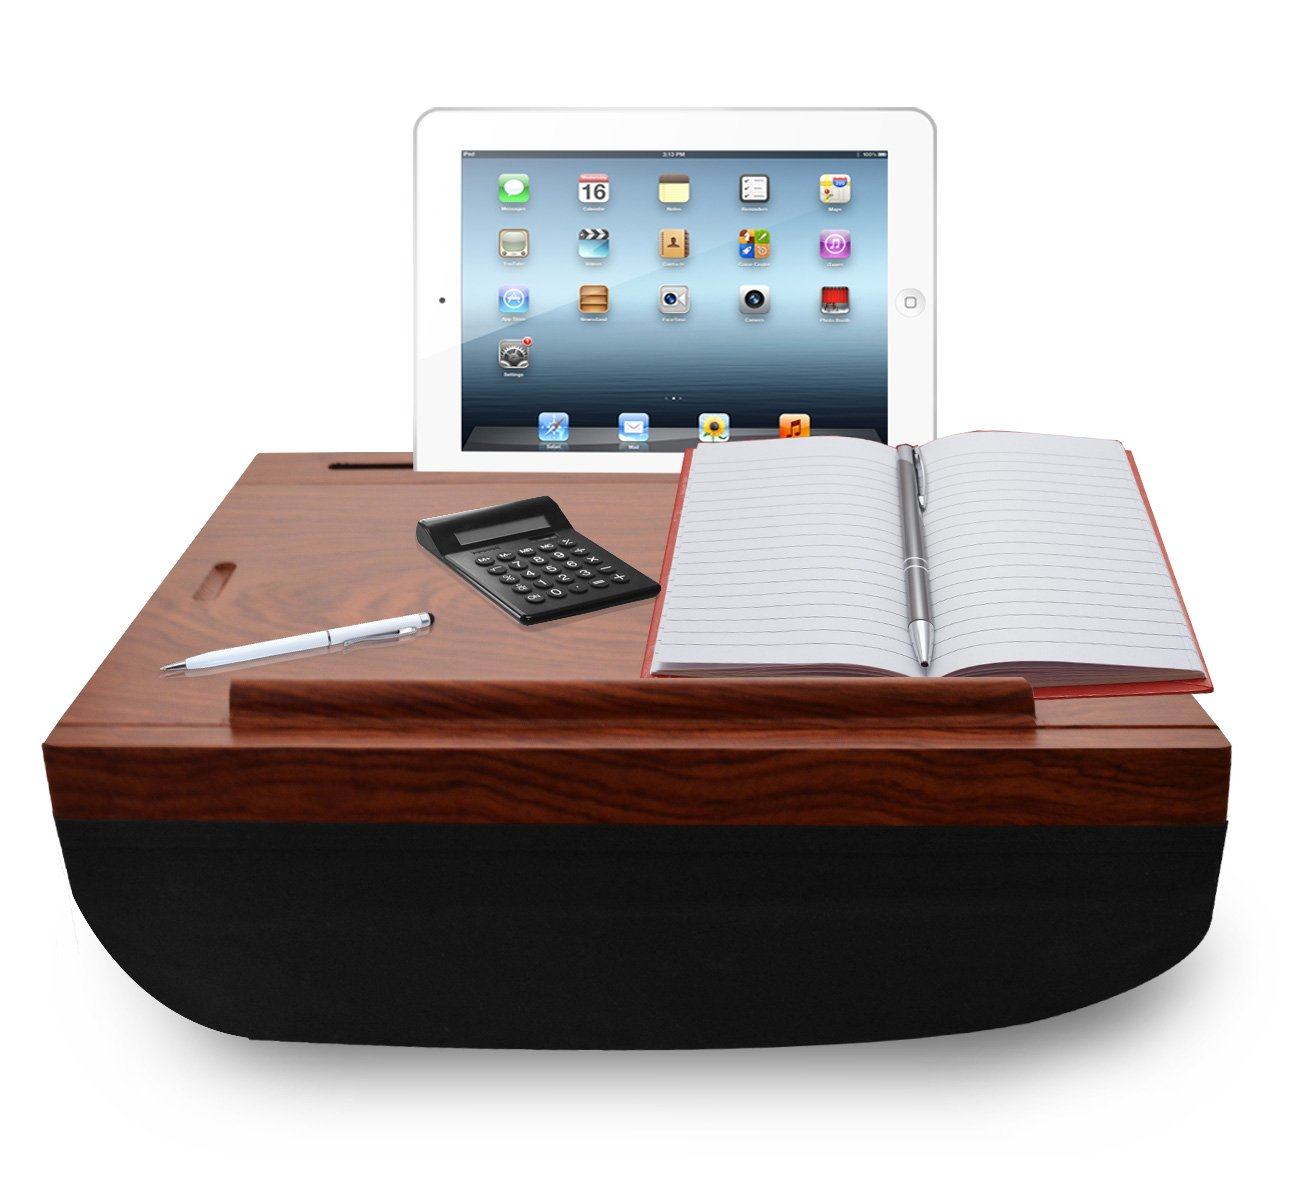 iCozy Portable Cushion Lap Desk With Storage - Dark wood with black by  (Image #1)